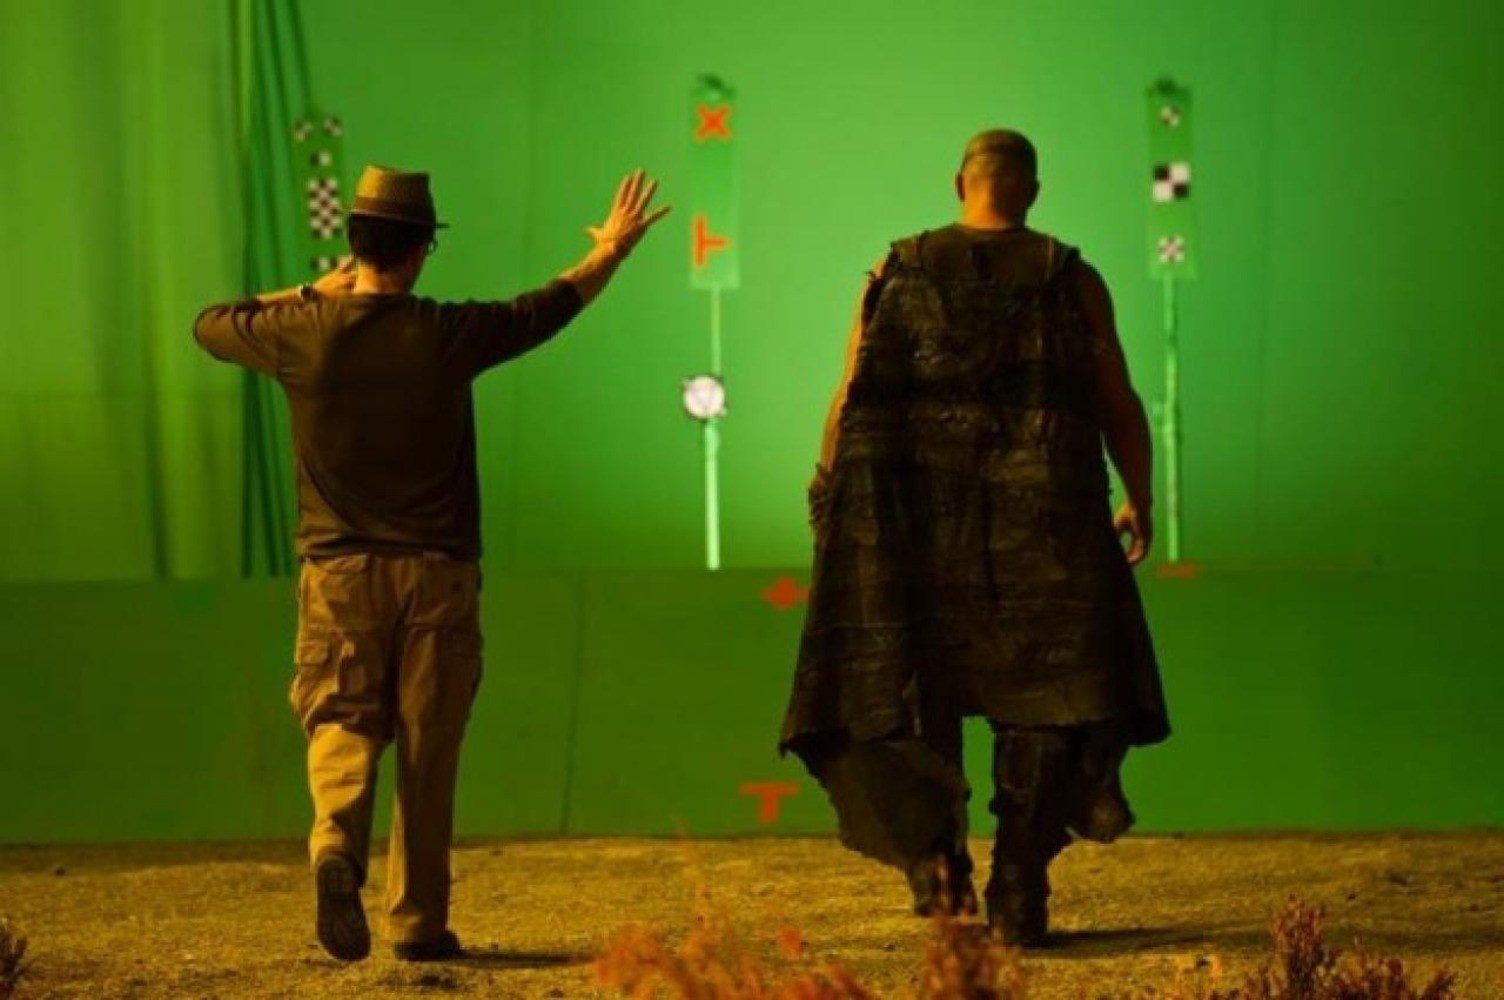 On Location : Riddick (2013) Behind the Scenes